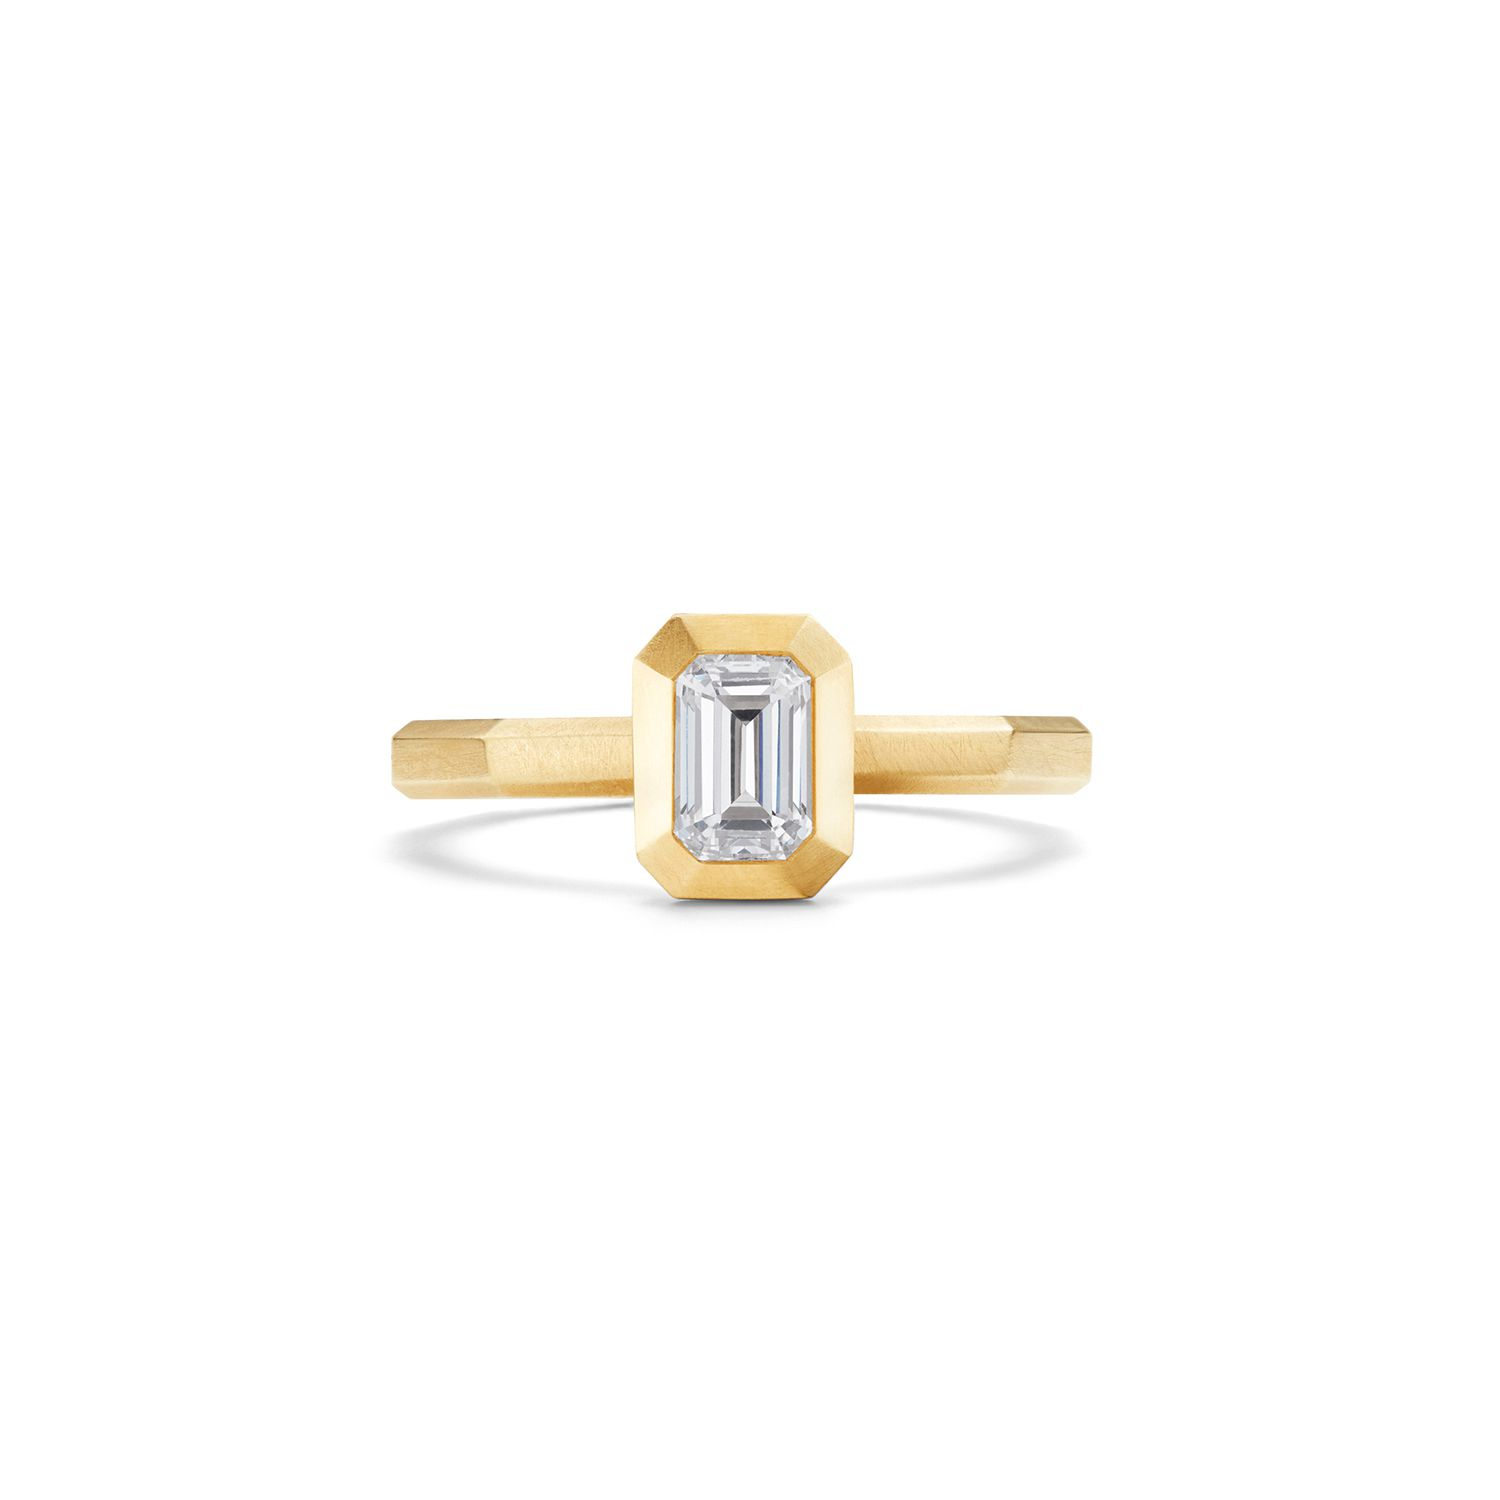 Bezel diamond engagement ring with yellow gold band on a white background.